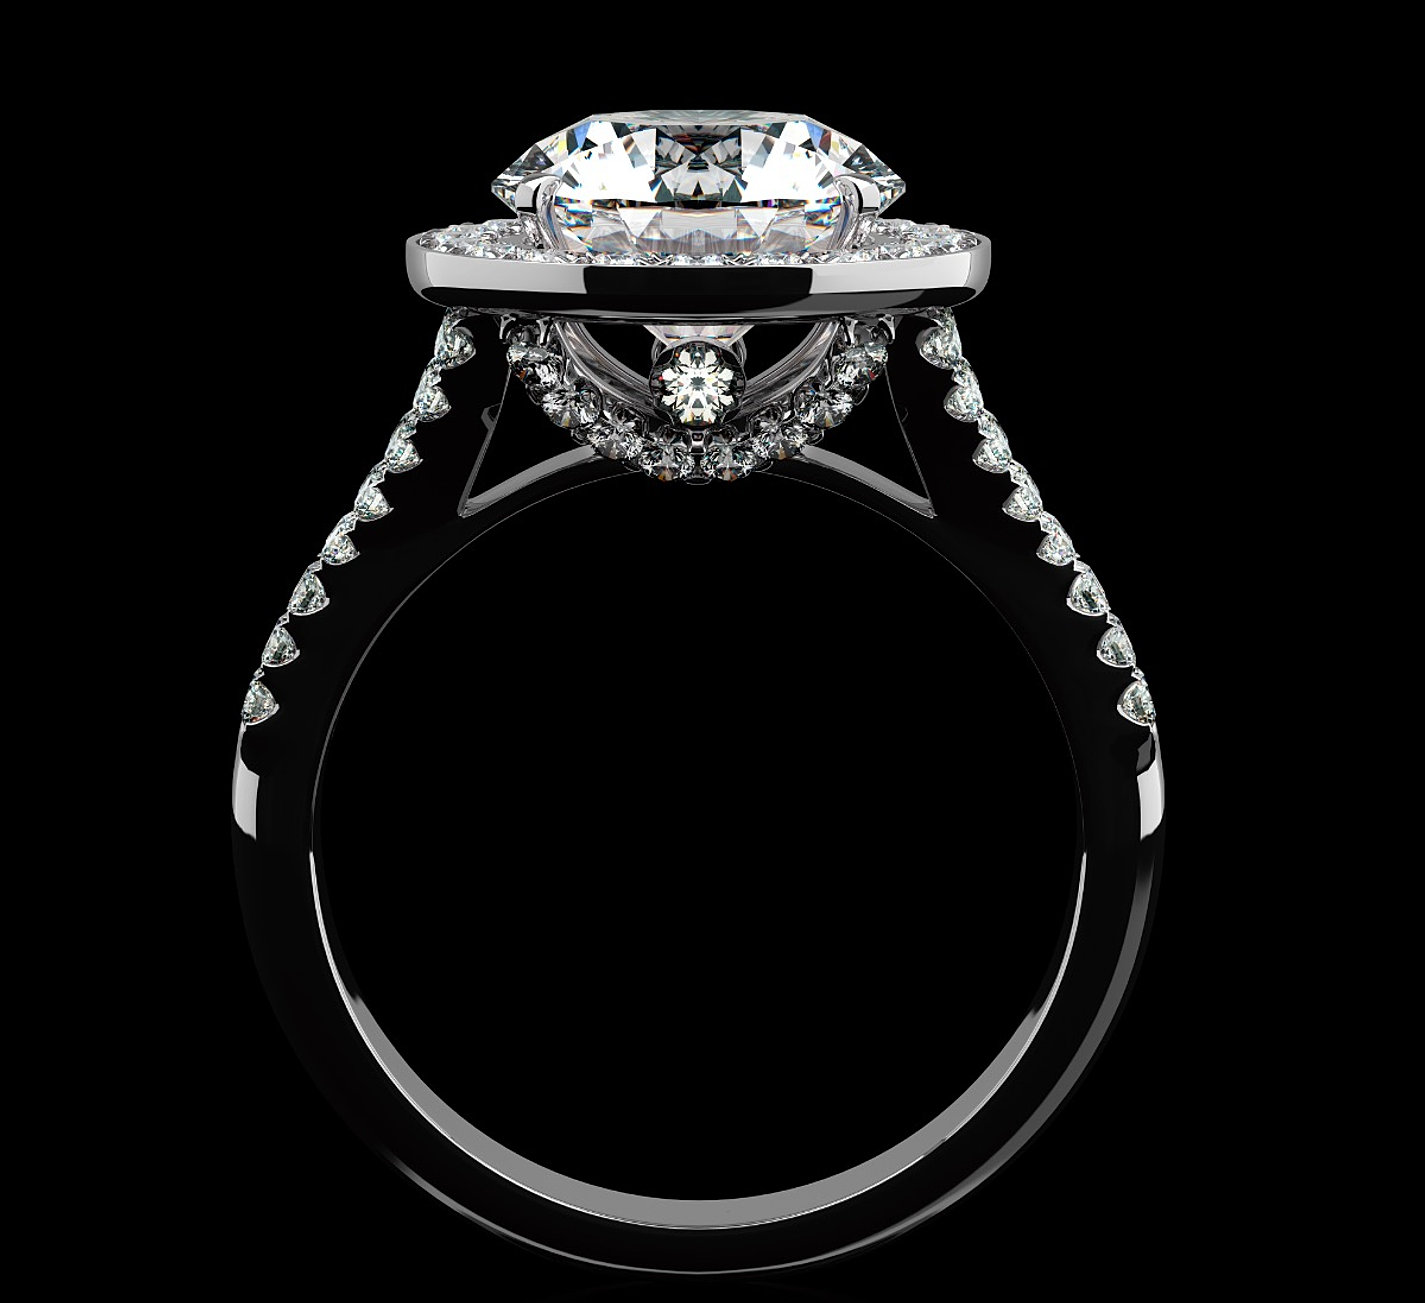 shop for engagement rings @diamond house jewelers